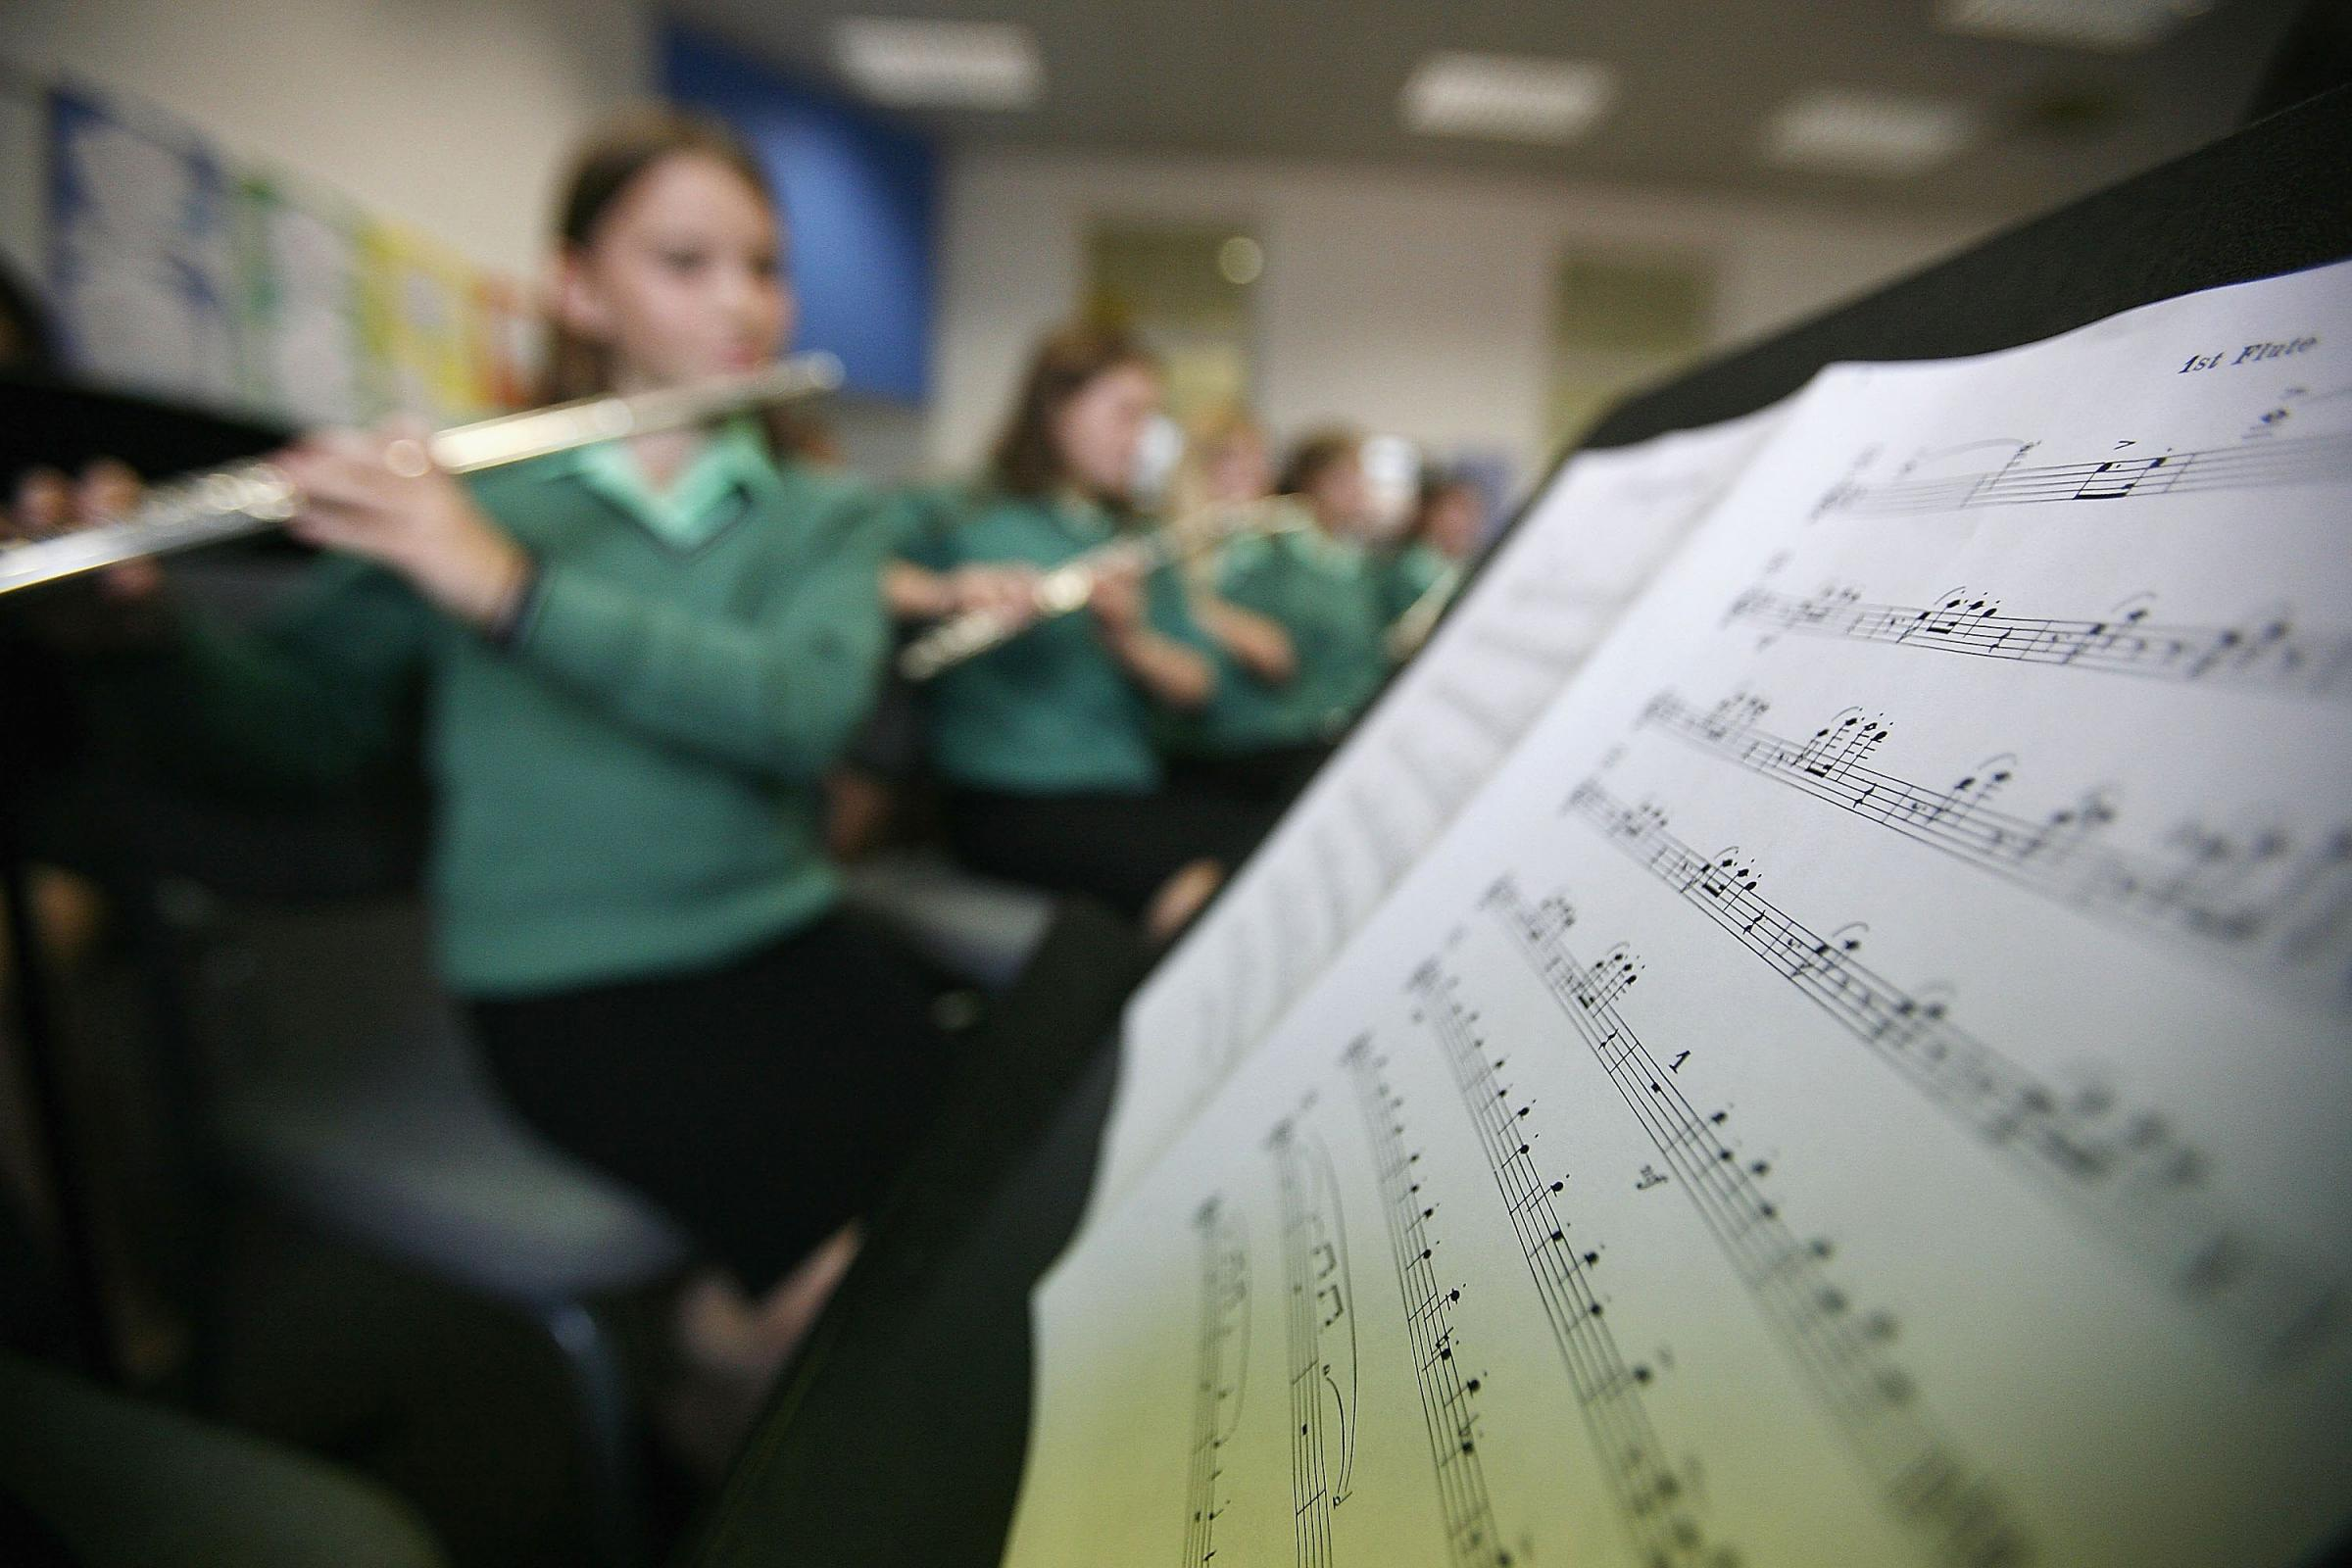 One third of Scottish councils now charge for music tuition